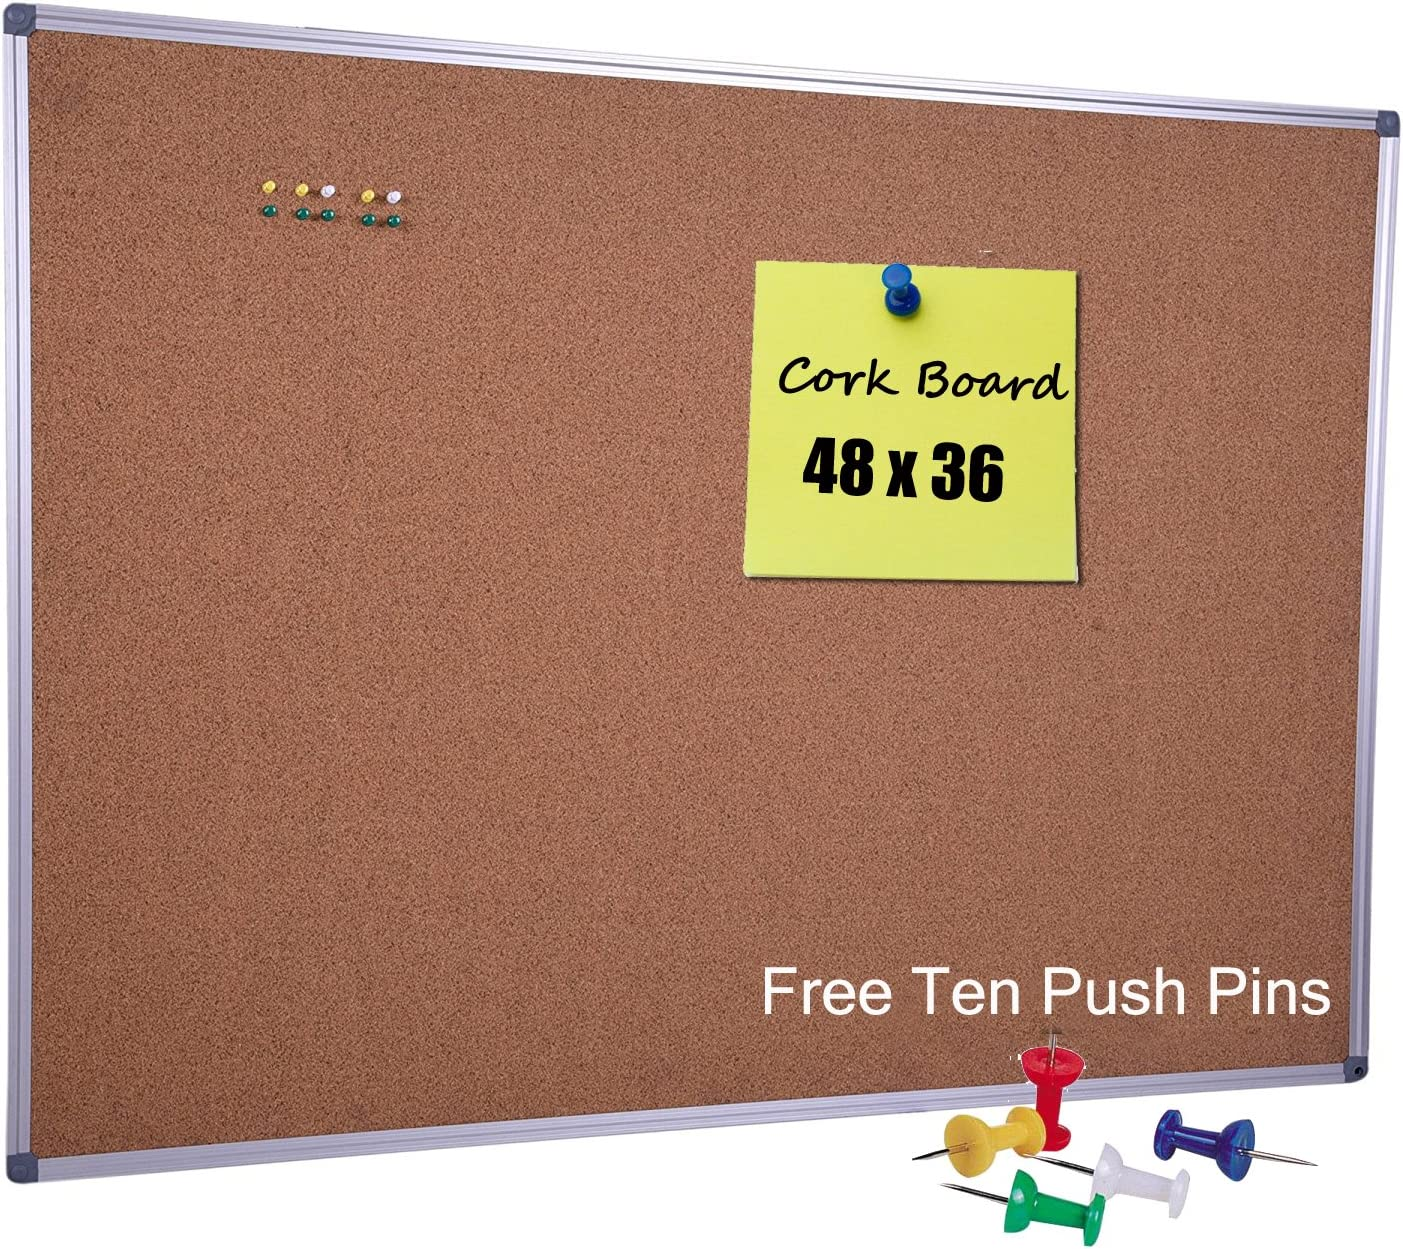 Large Cork Board 48 x 36 Inch with Satin-Finished Aluminum Frame, Notice Bulletin Board Memo Pin Board for Office and Home Usage, Ten Free Pins Included